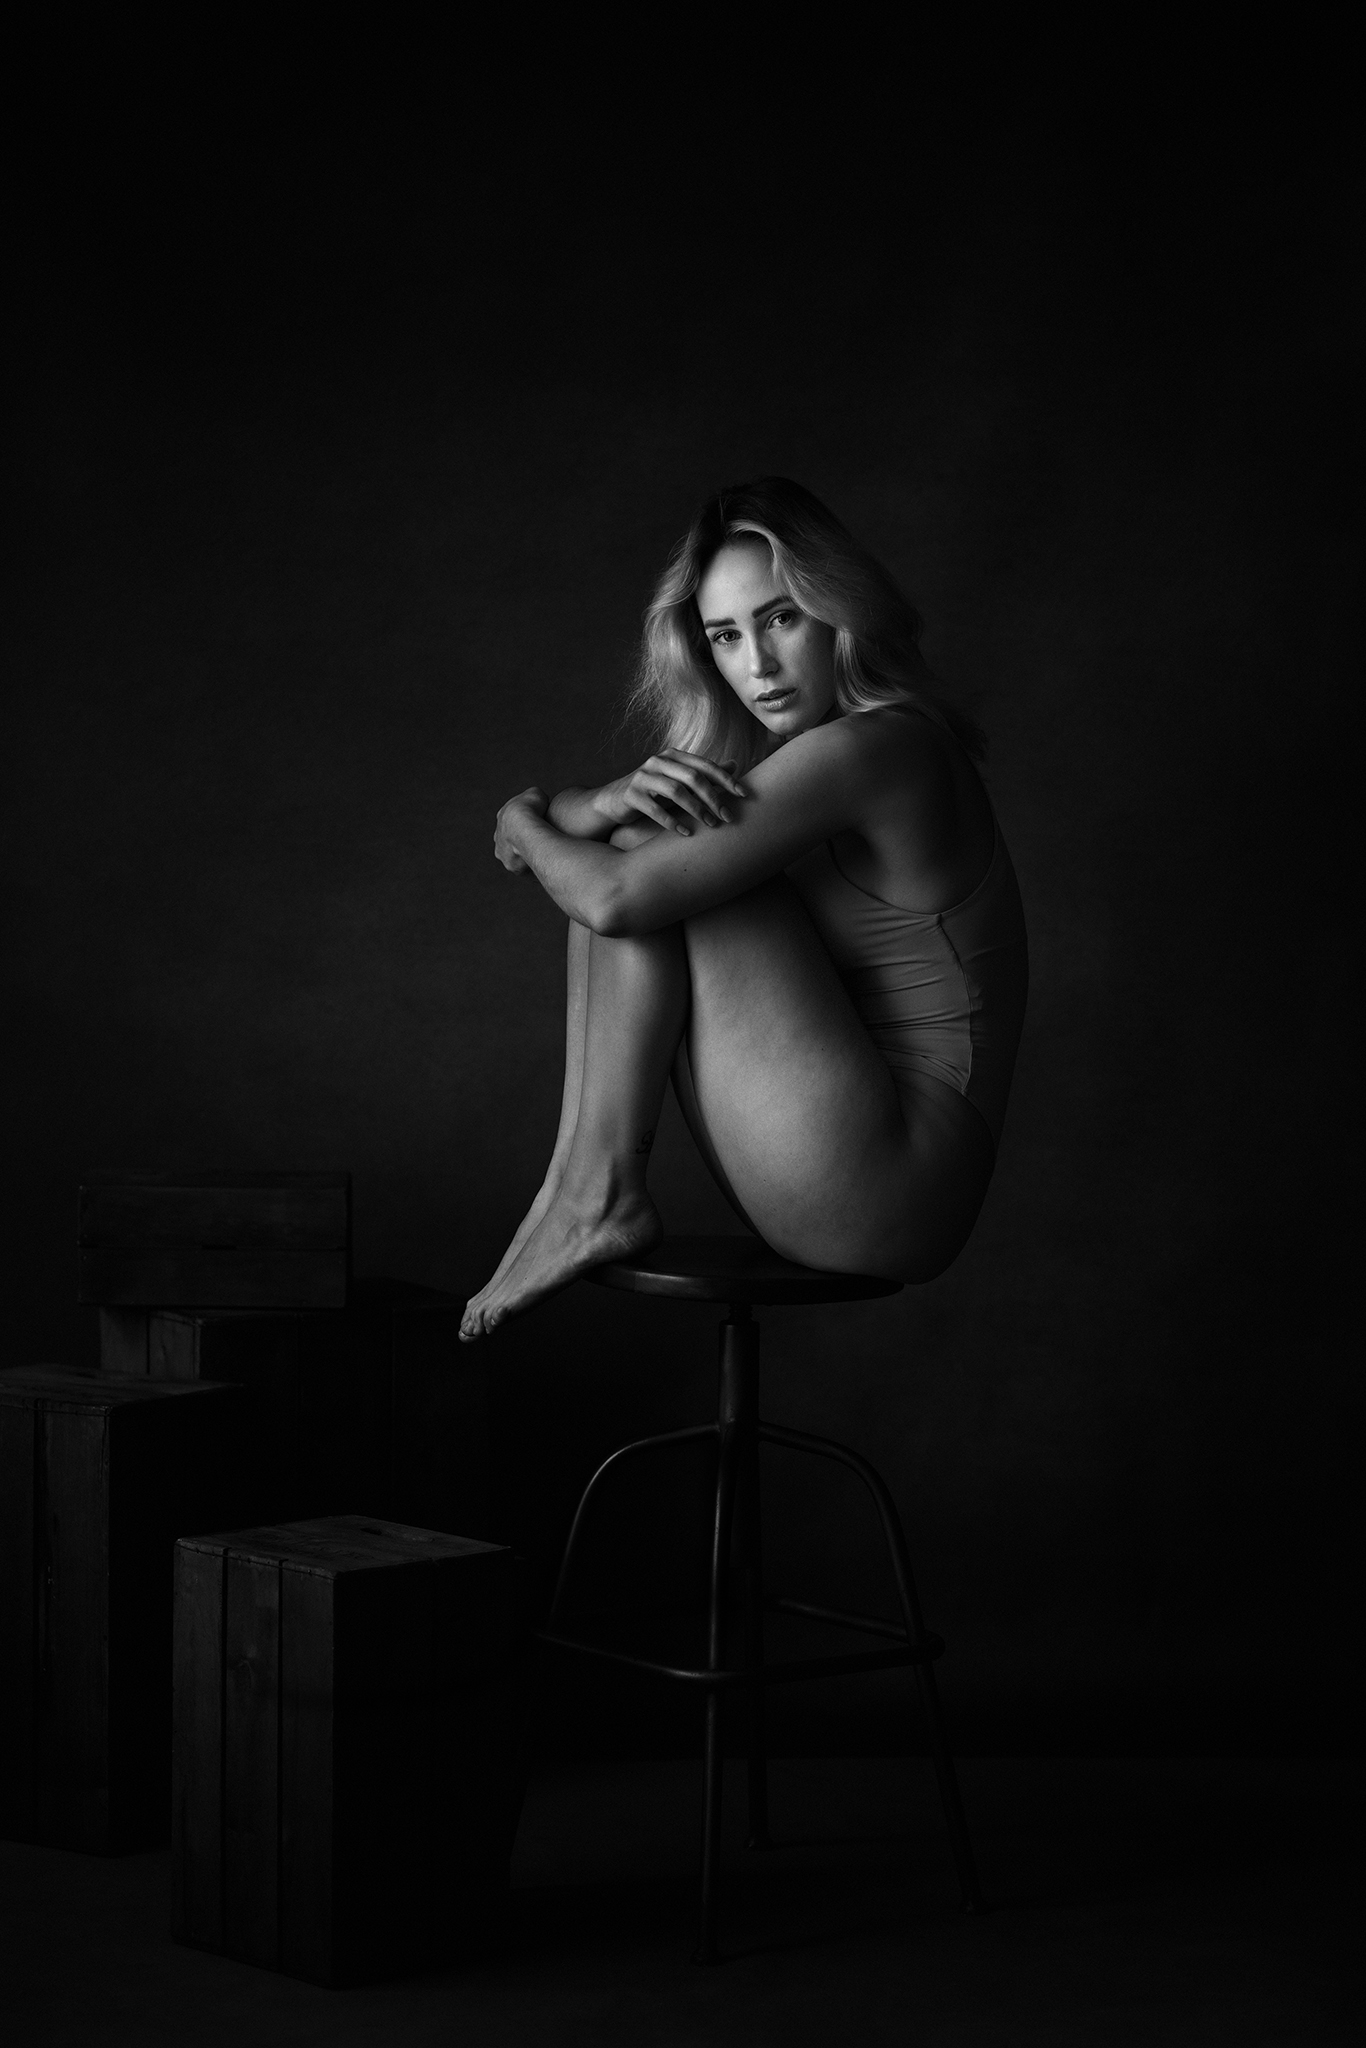 black and white naked photoshoot by Boudoir Photographer Lancashire